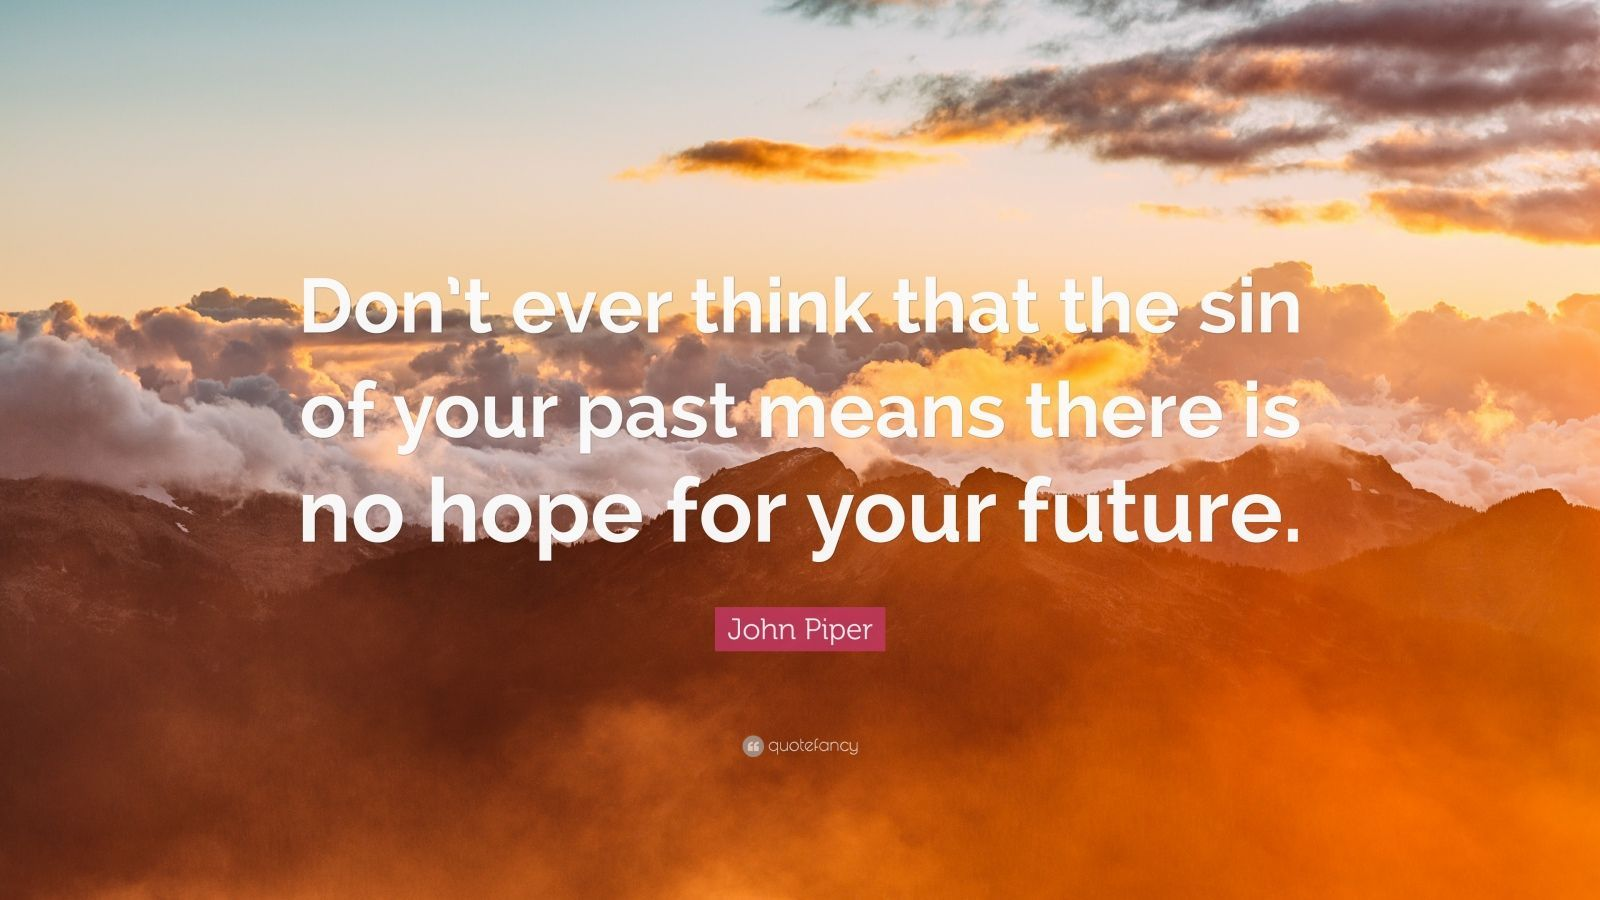 John Piper Quote Don T Ever Think That The Sin Of Your Past Means There Is No Hope For You Rick Warren Quotes Smith Wigglesworth Quotes Timothy Keller Quotes